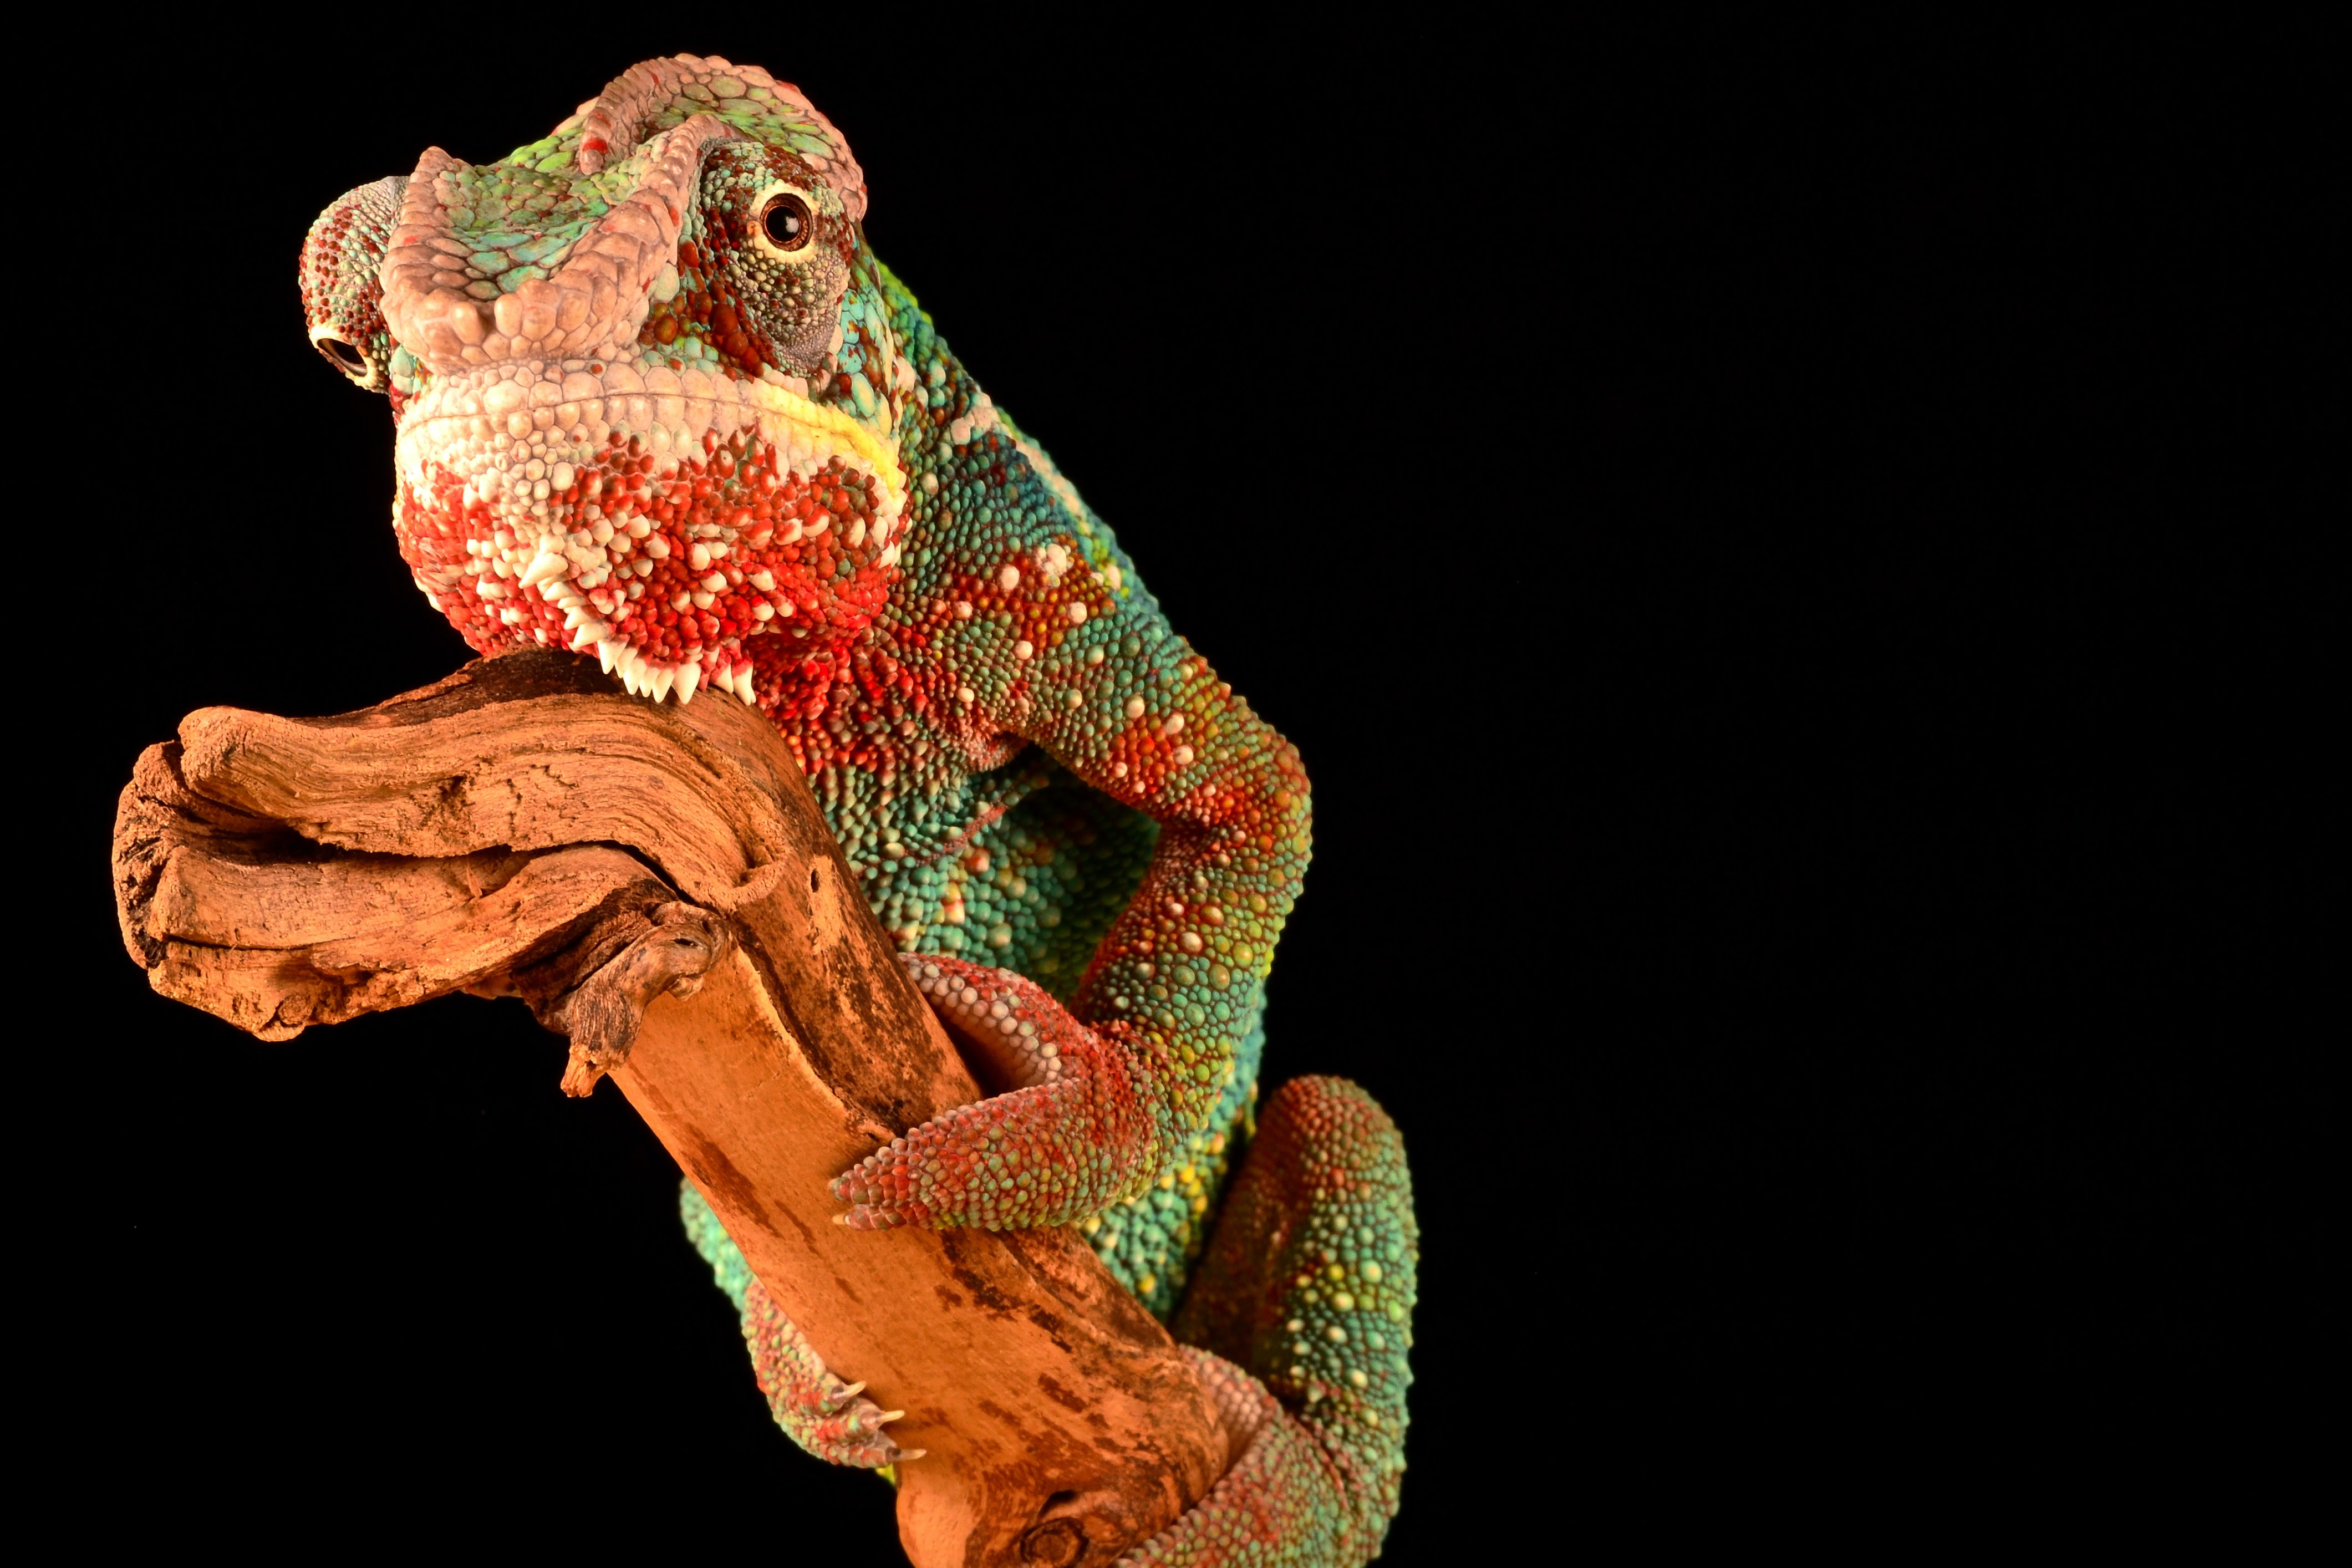 A magnificently colorful chameleon sitting on a gnarly branch against a plain black background